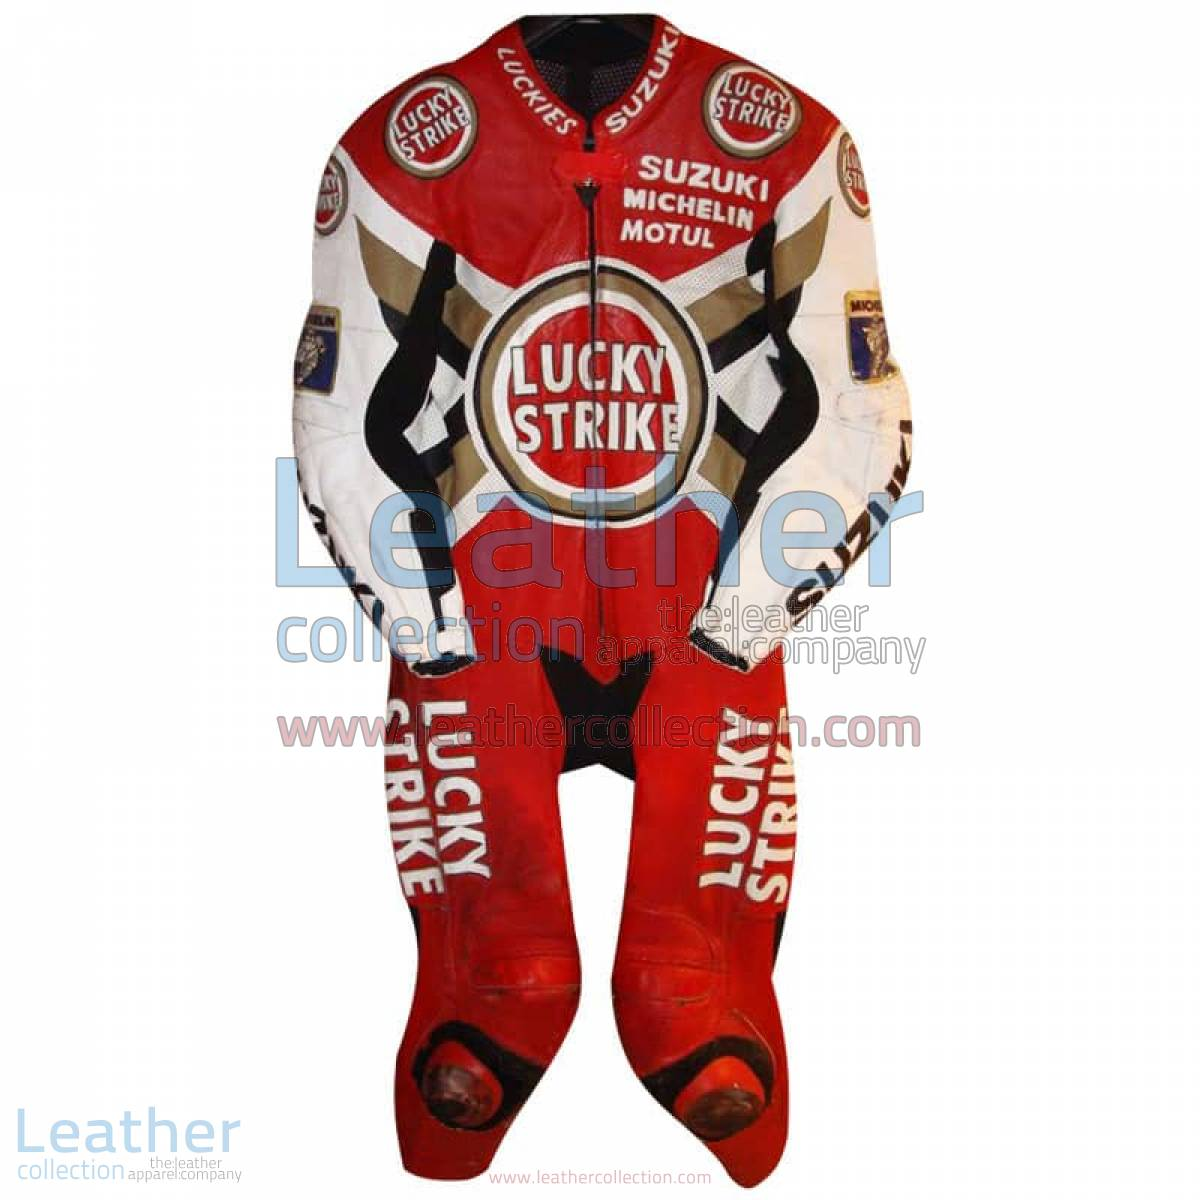 Anthony Gobert Suzuki Lucky Strike 1997 MotoGP Leathers | motogp leathers